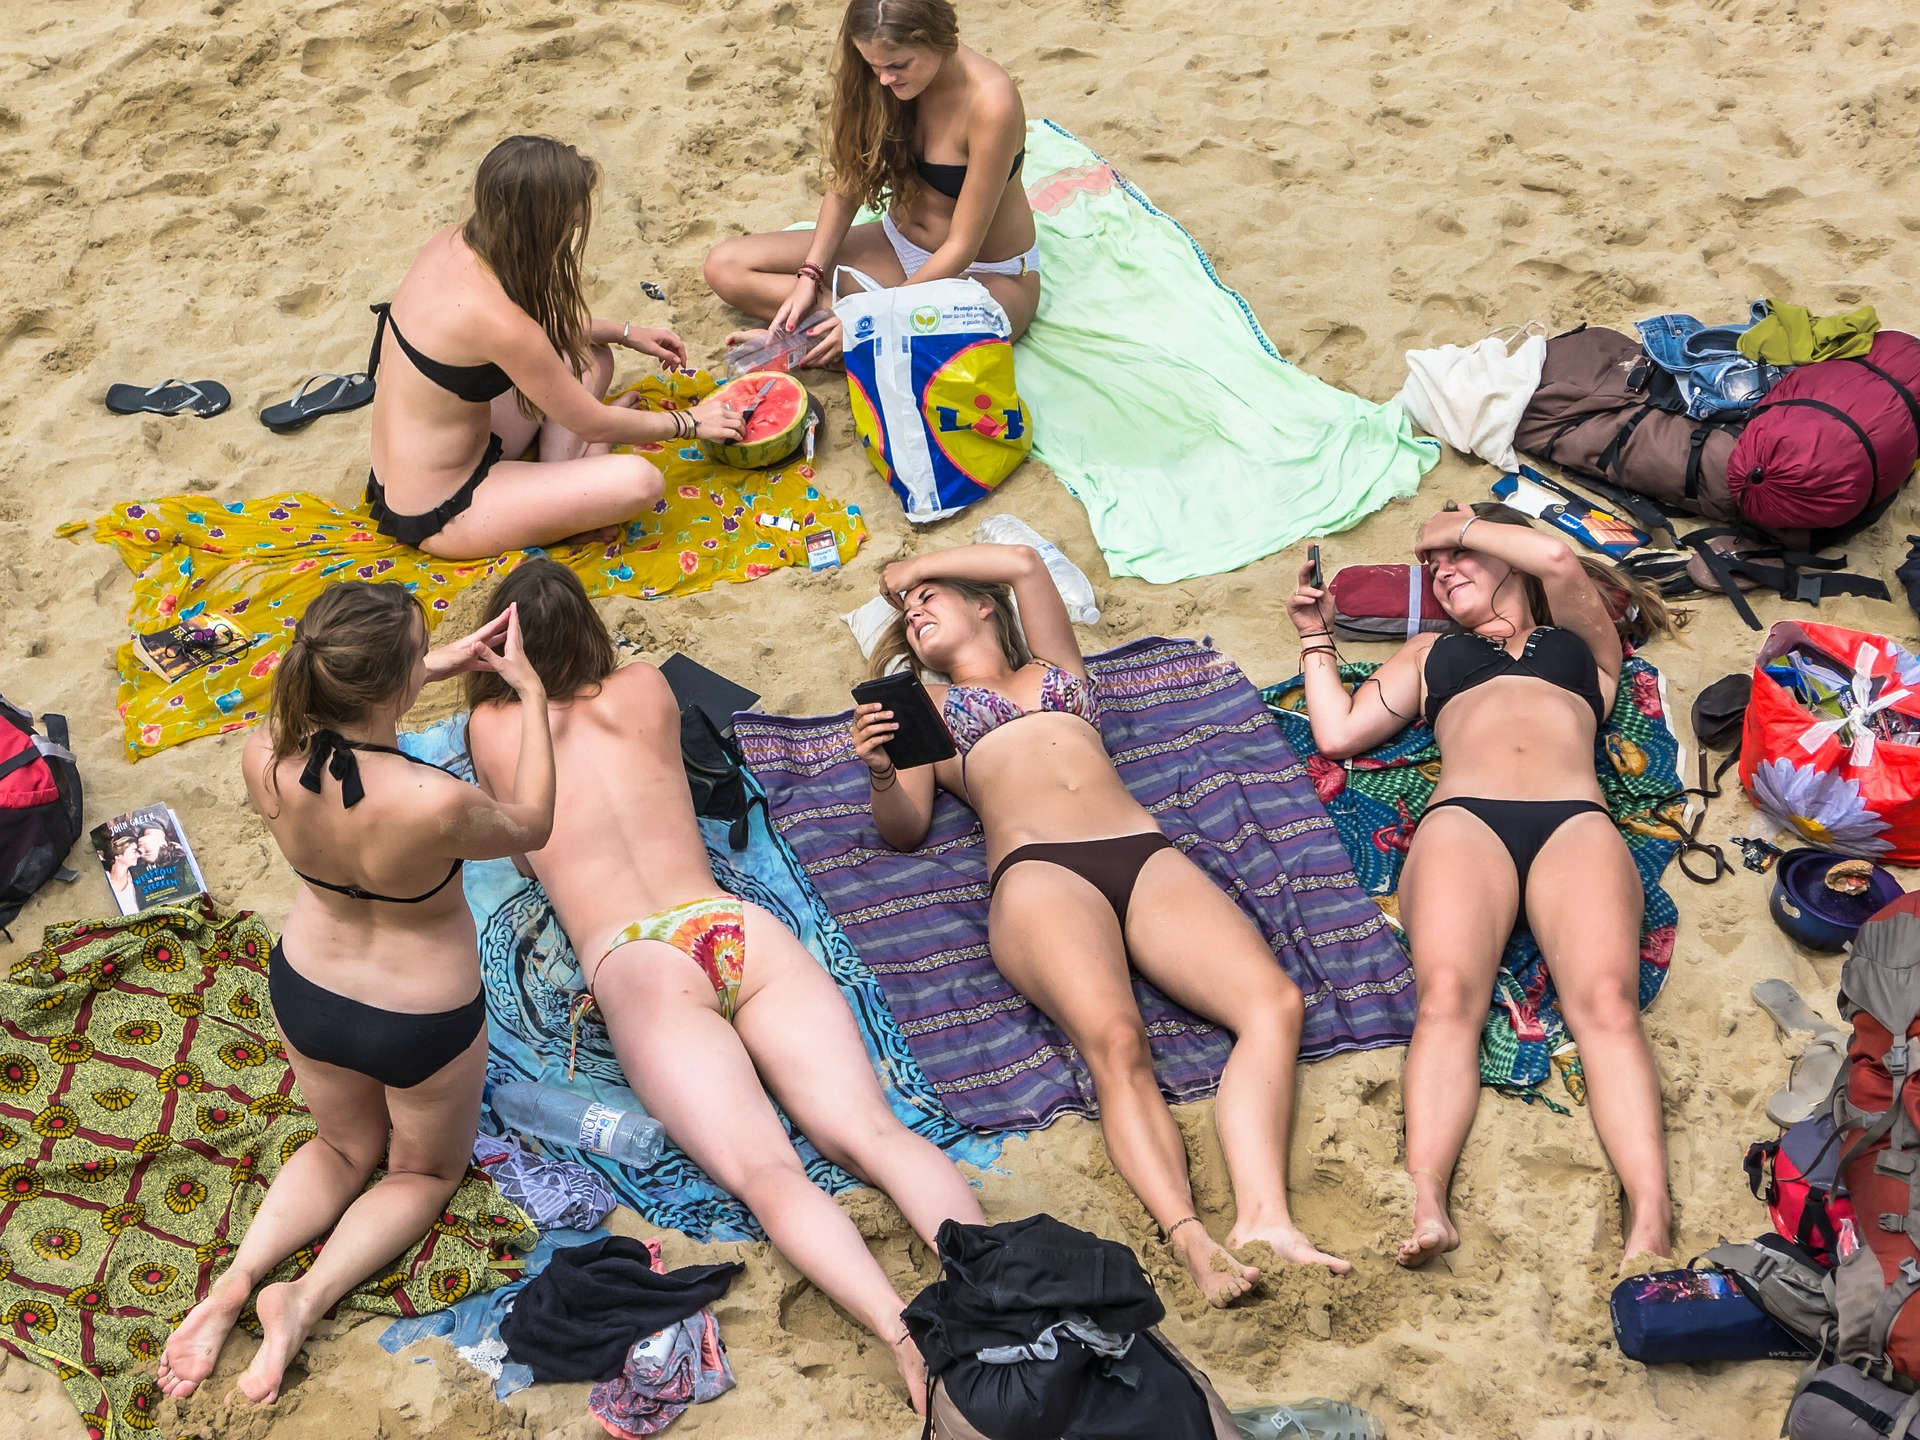 Girls on a beach-day out chatting and sunbathing